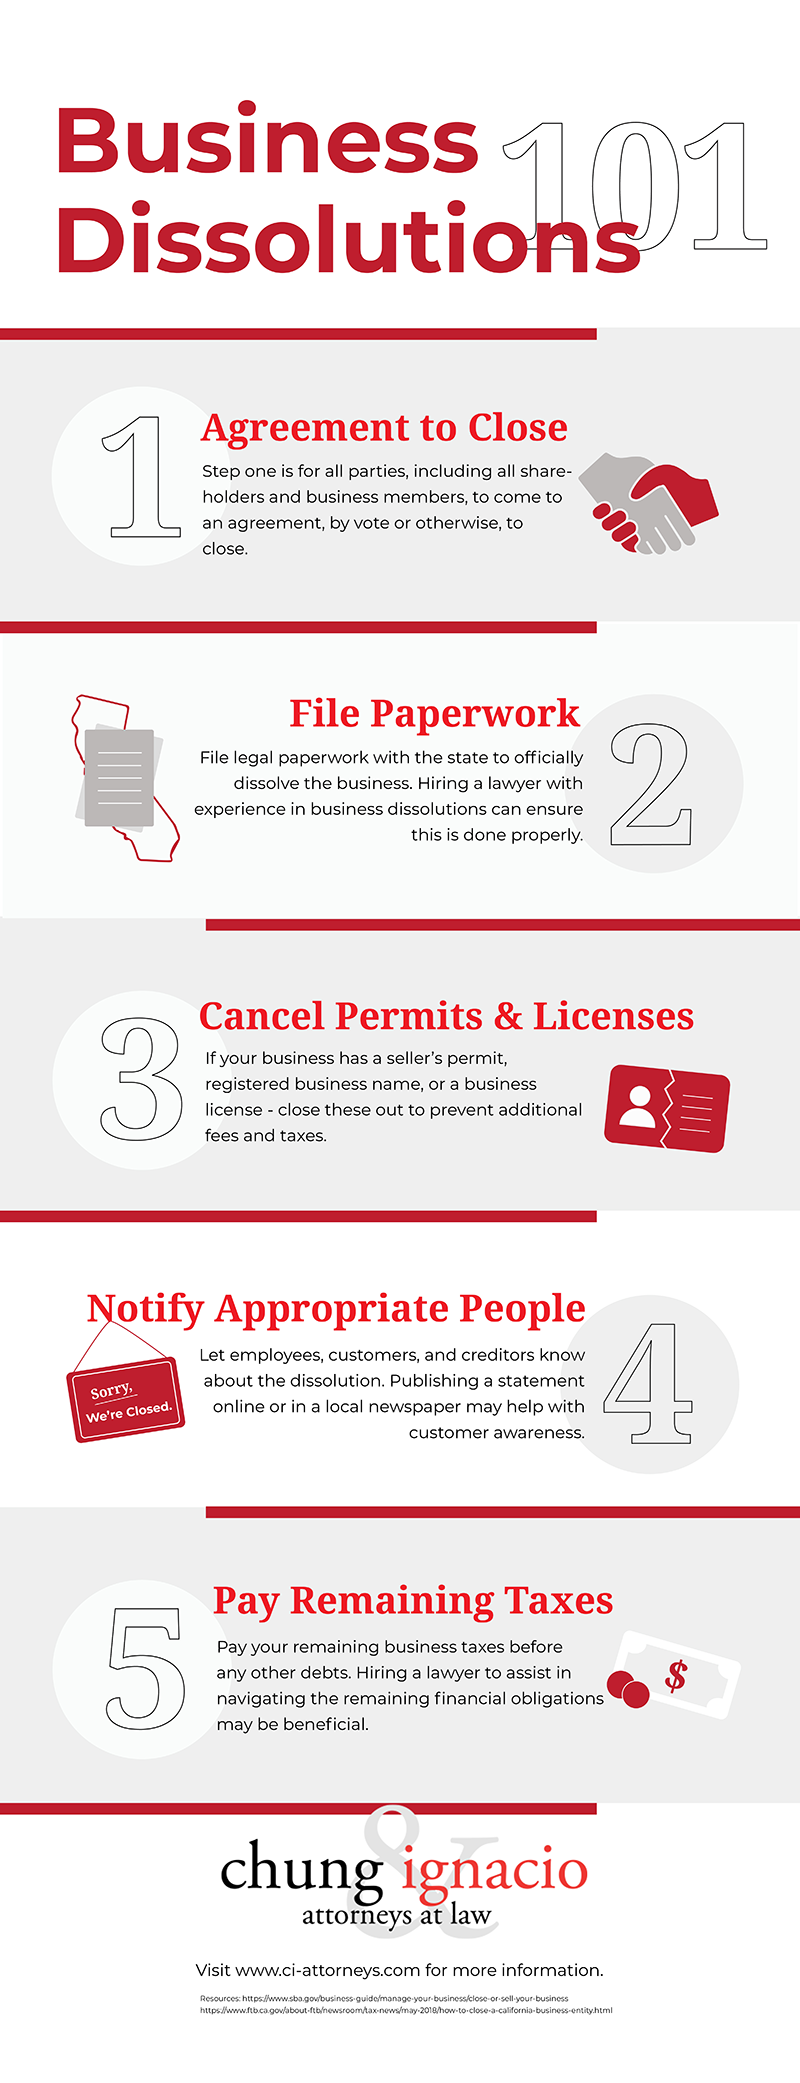 [INFOGRAPHIC] Business Dissolutions 101